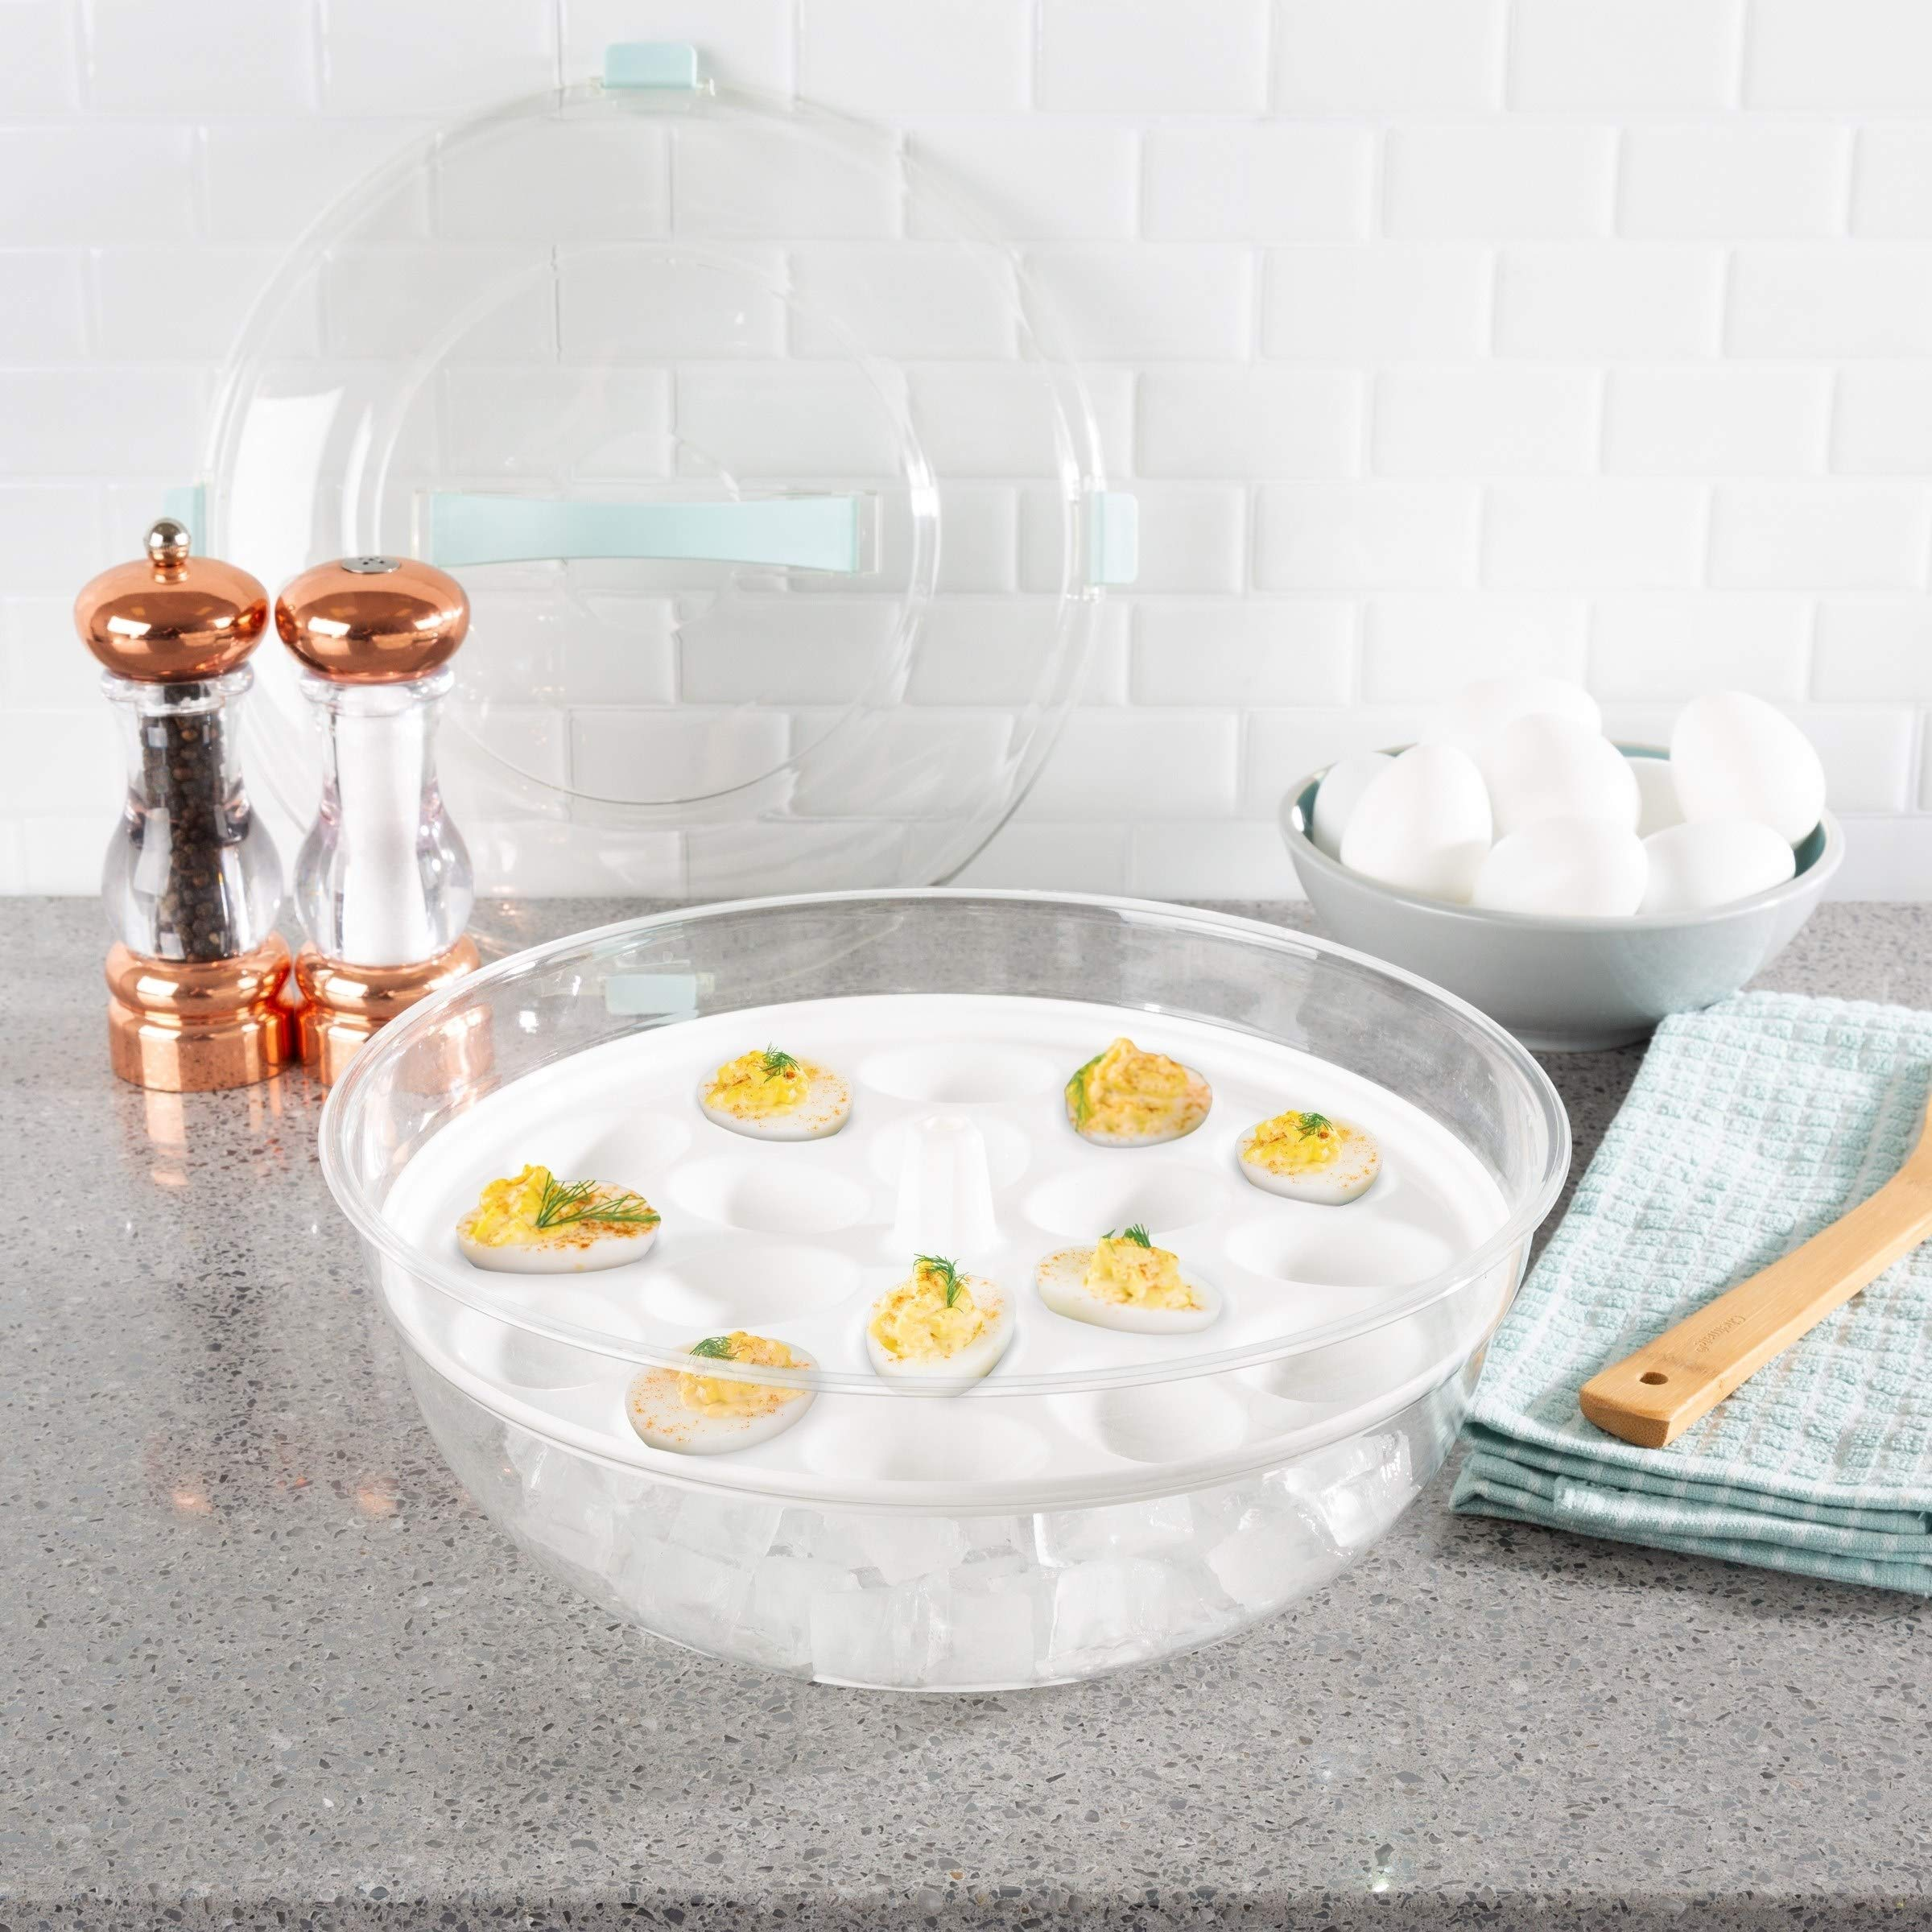 MISC Clear Deviled Egg Tray with Lid Bowl Cold Appetizer Tray Platter with Ice Compartment 4 in 1 Carrier Dish Round Serving Platters White, Plastic